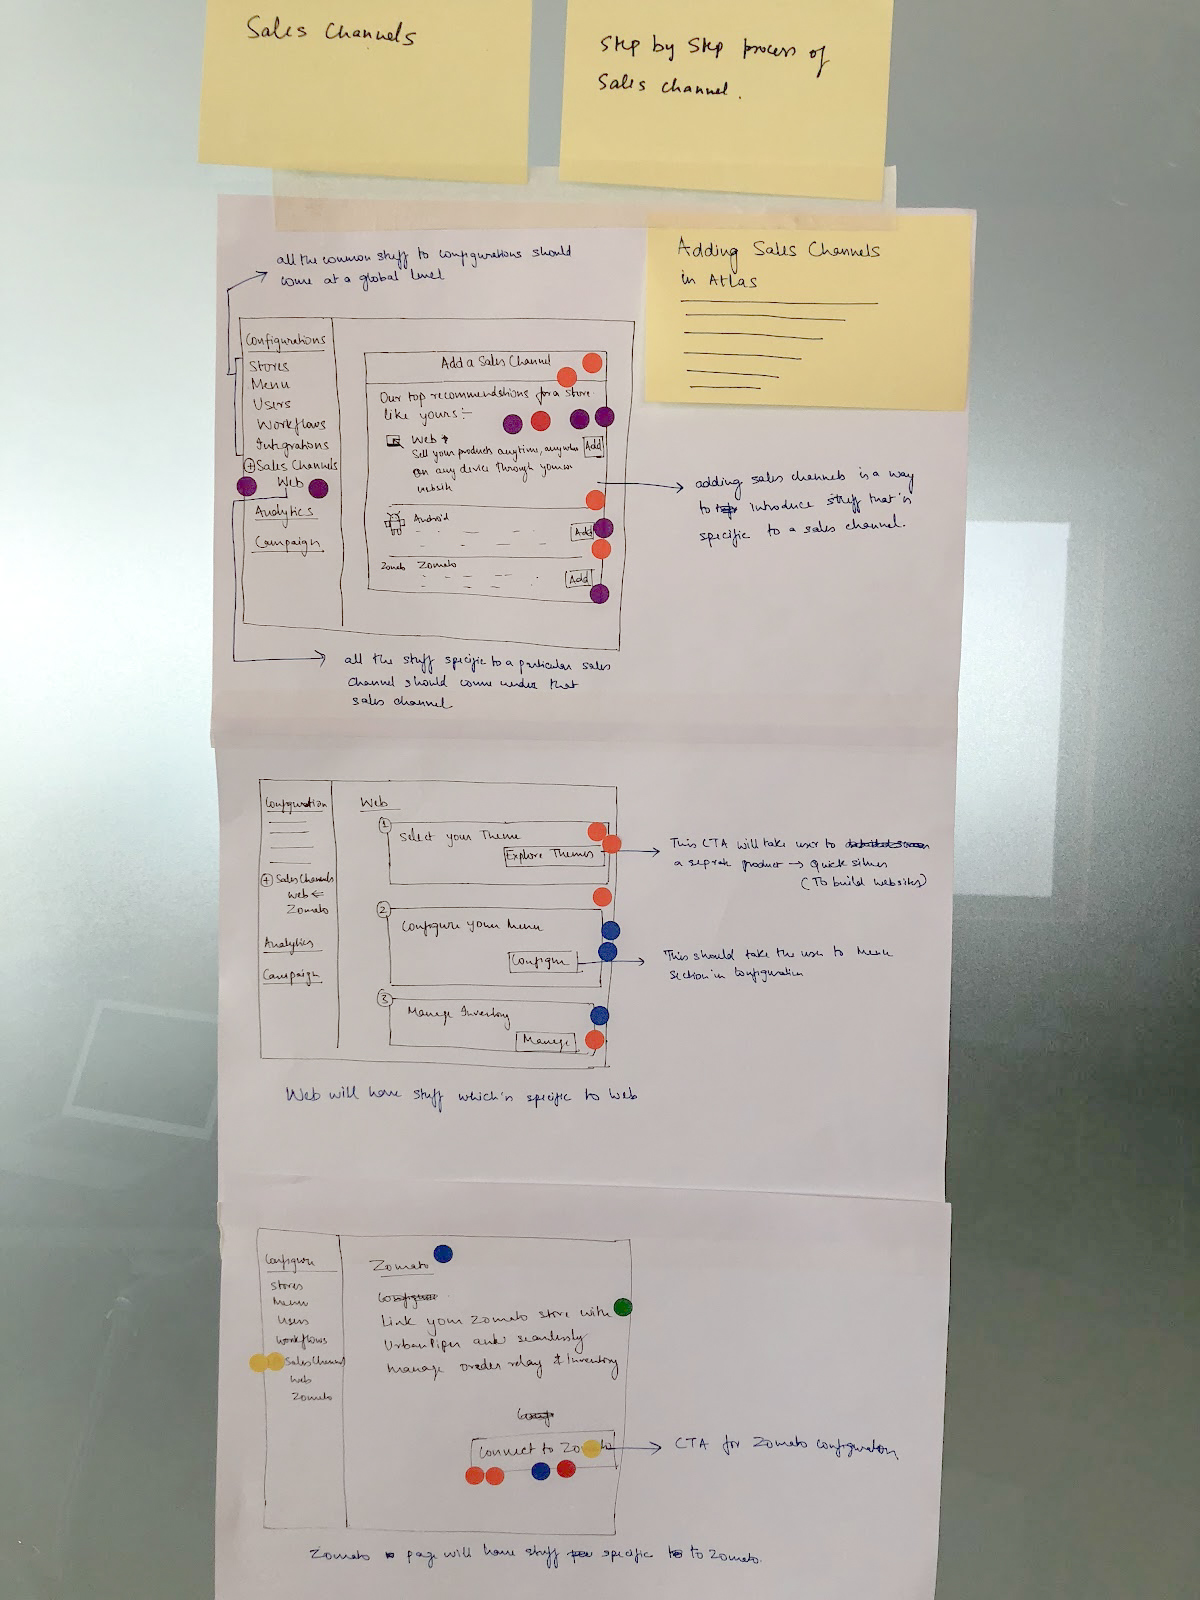 Design sprint idea votiing